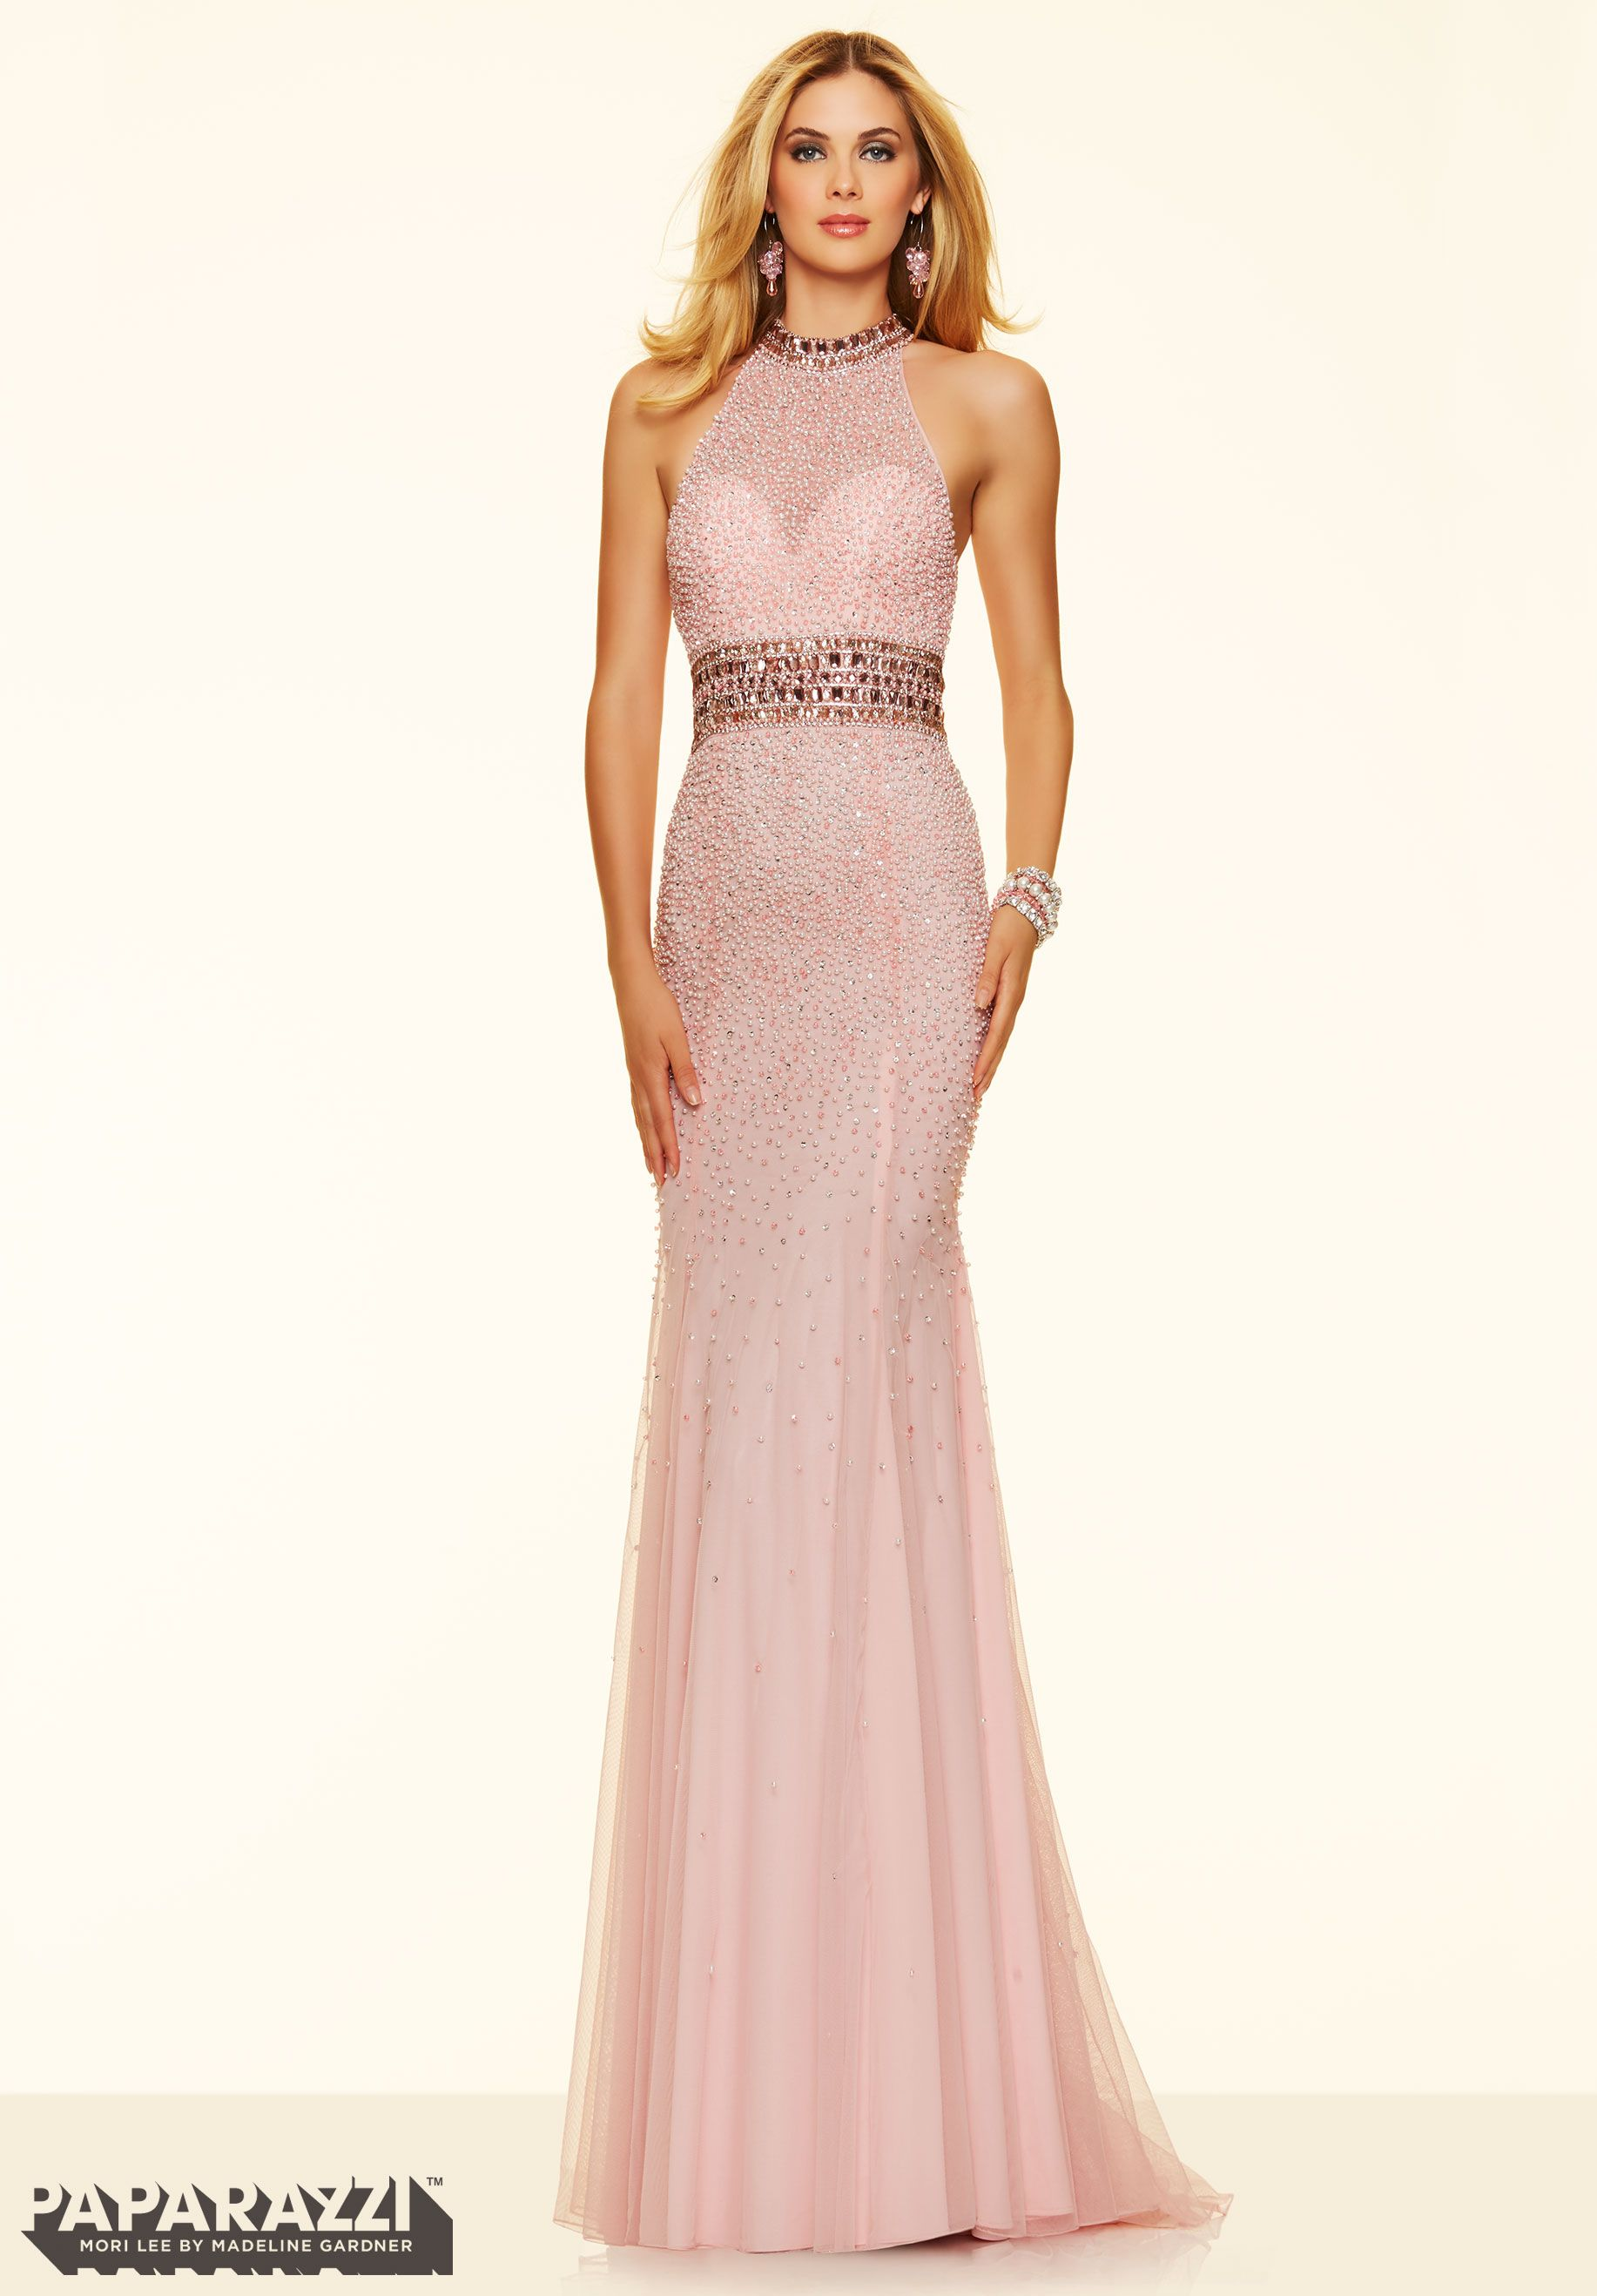 Prom dresses by Paparazzi Prom Pearl Encrusted Net with Jeweled ...